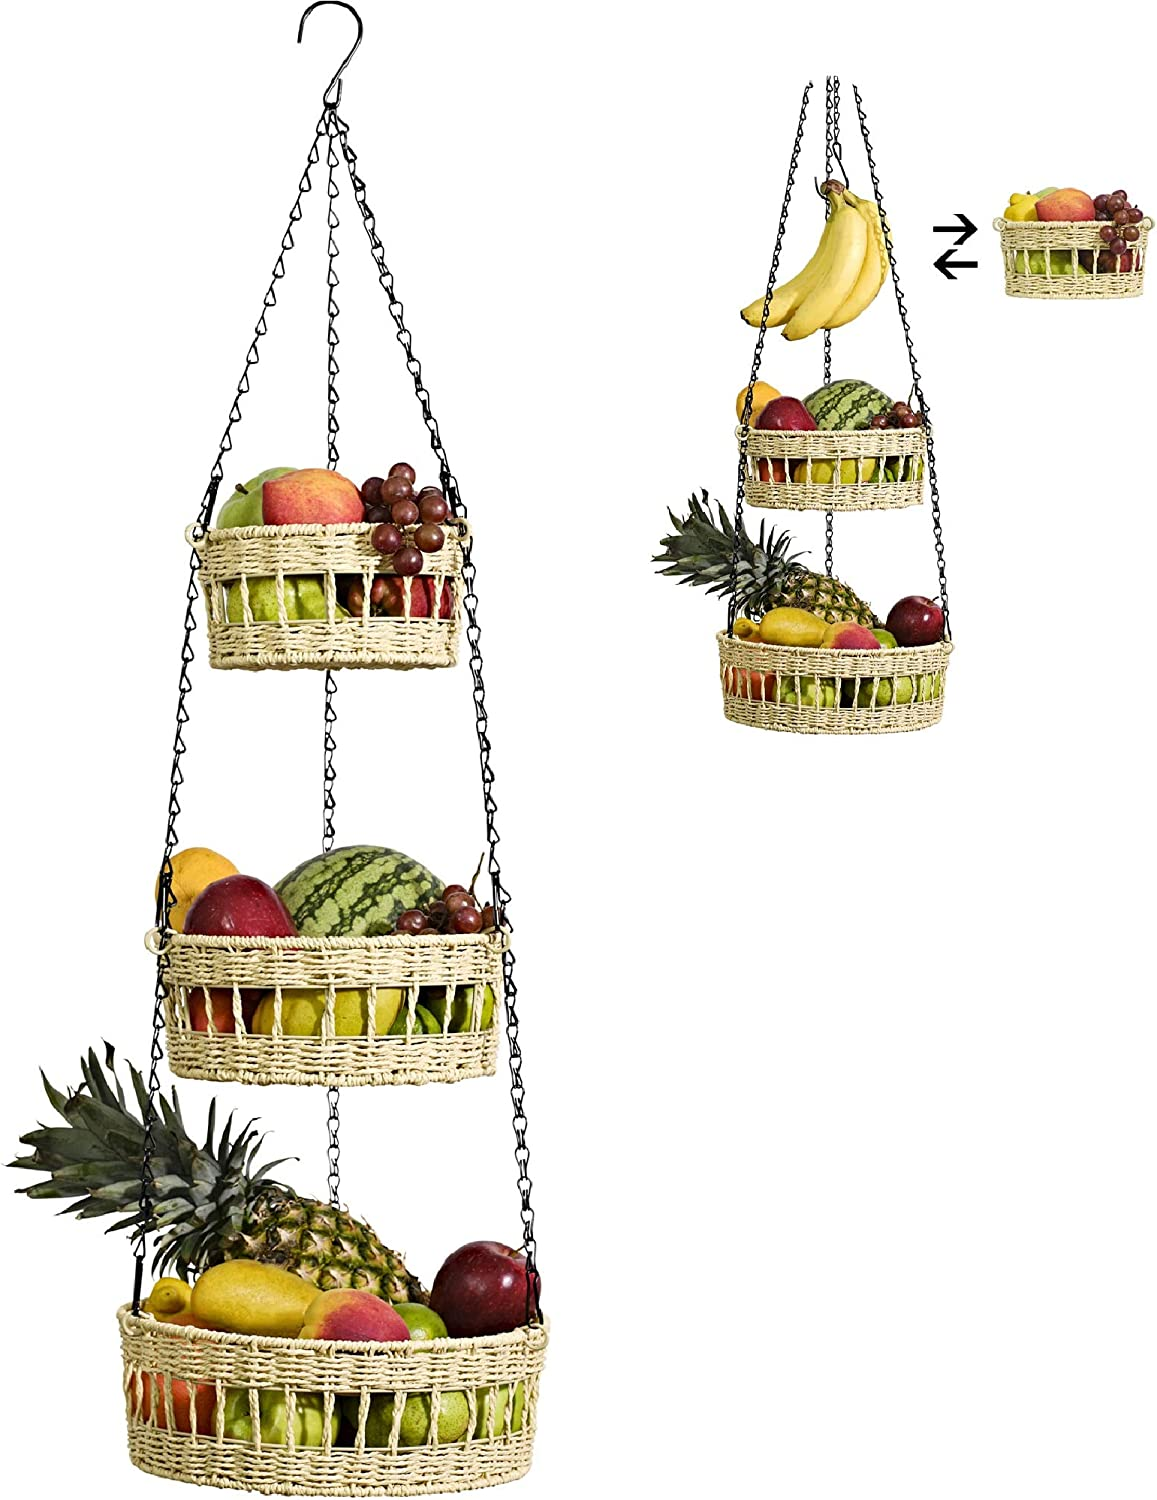 Hanging Fruit Basket 3 Tier - Free Up Countertop - Wicker Vegetable Storage and Fruit Organizer - Saves Space - Macrame Hanging Baskets for Kitchen with Banana Holder - Carries 20lb - Beige